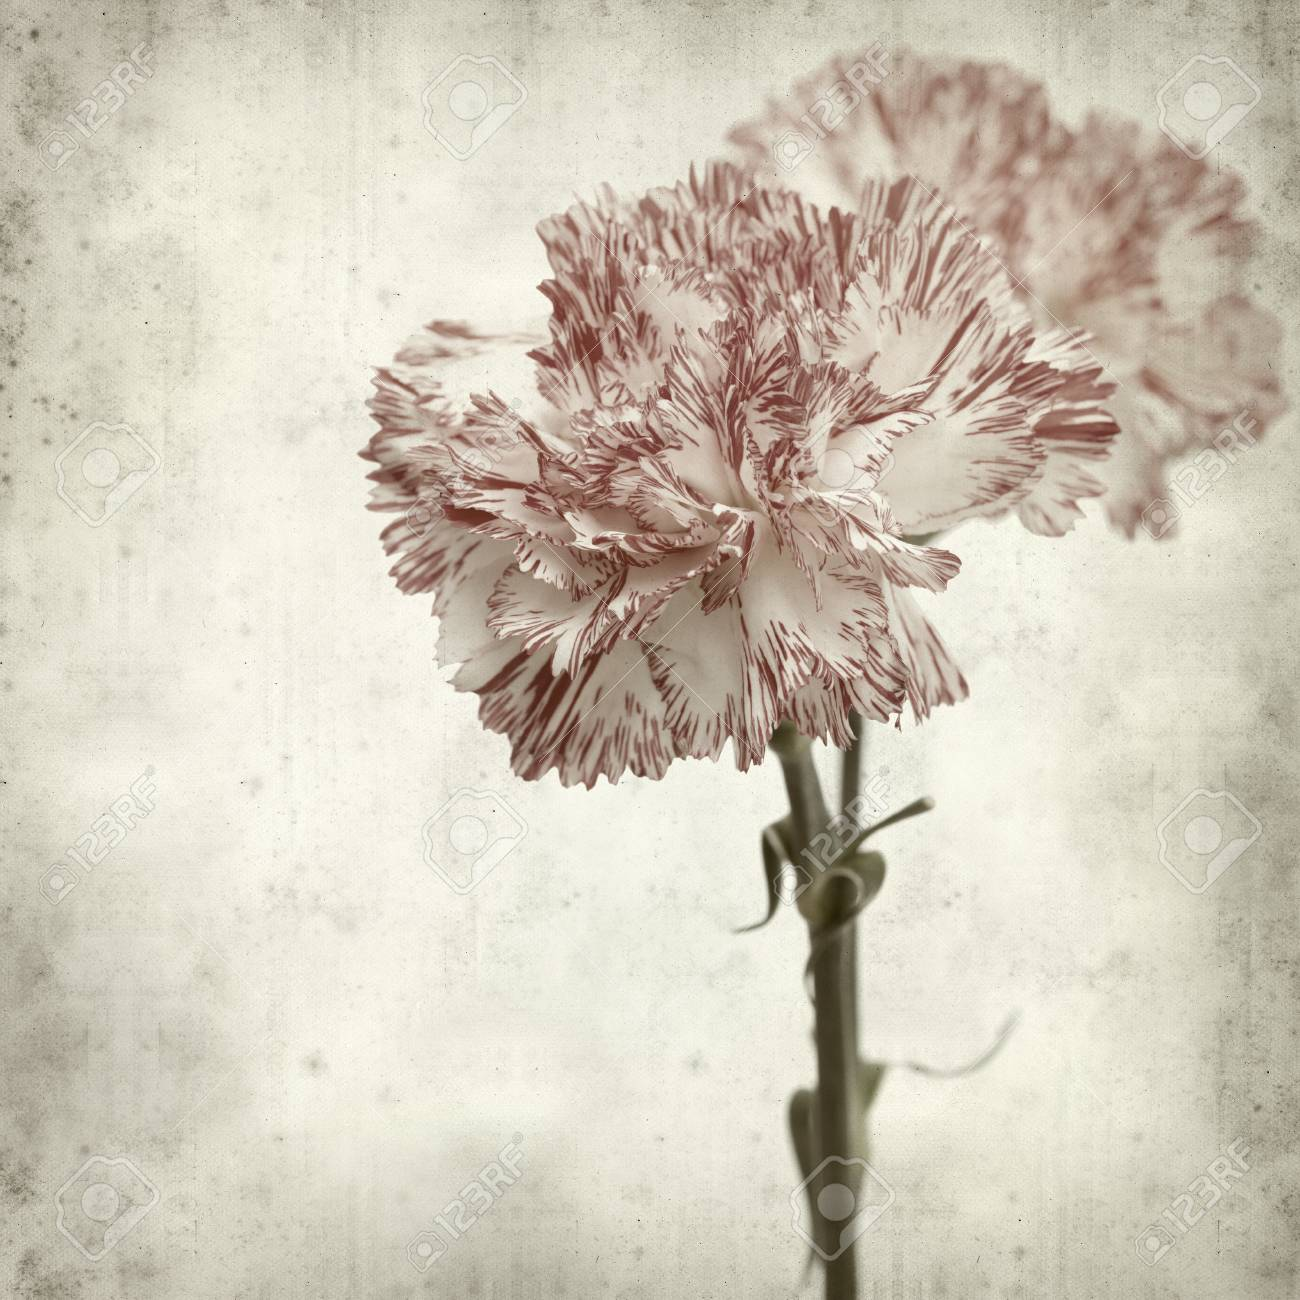 Textured Old Paper Background With White And Red Carnation Flower